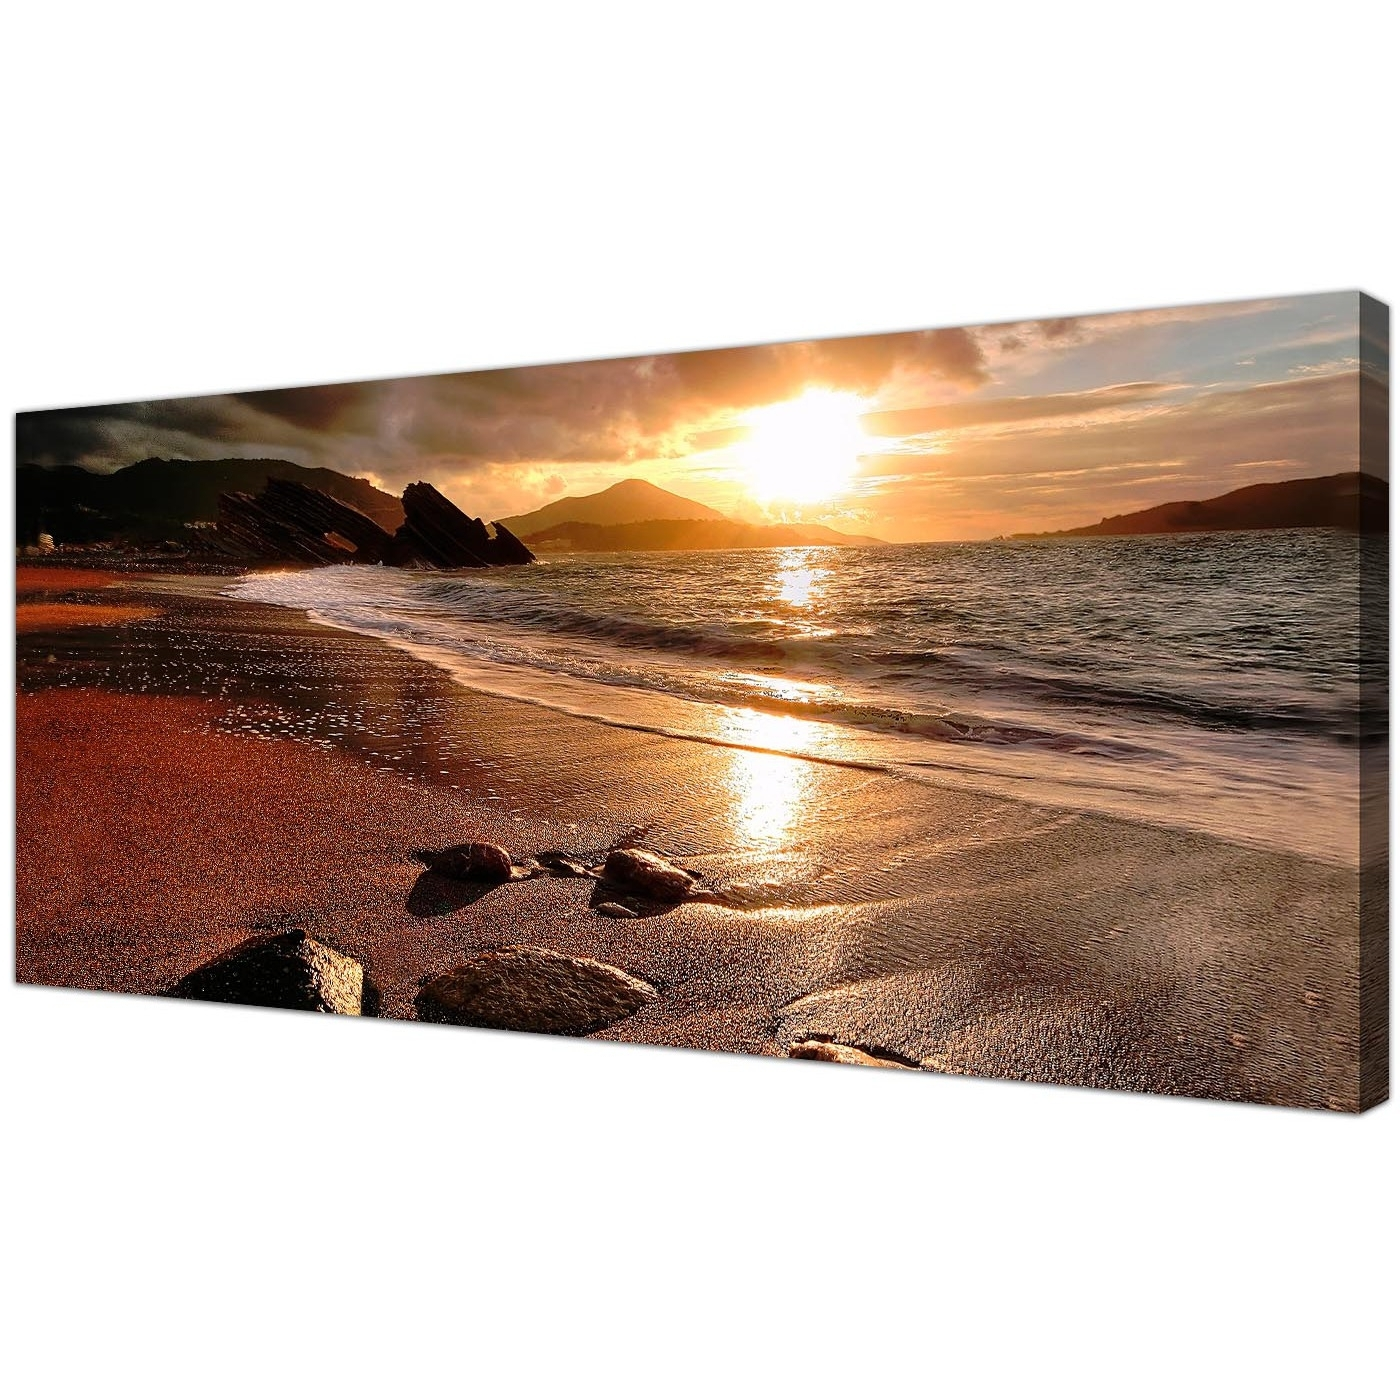 Wide Canvas Prints Of A Beach Sunset For Your Living Room Inside Most Recent Landscape Canvas Wall Art (View 14 of 15)